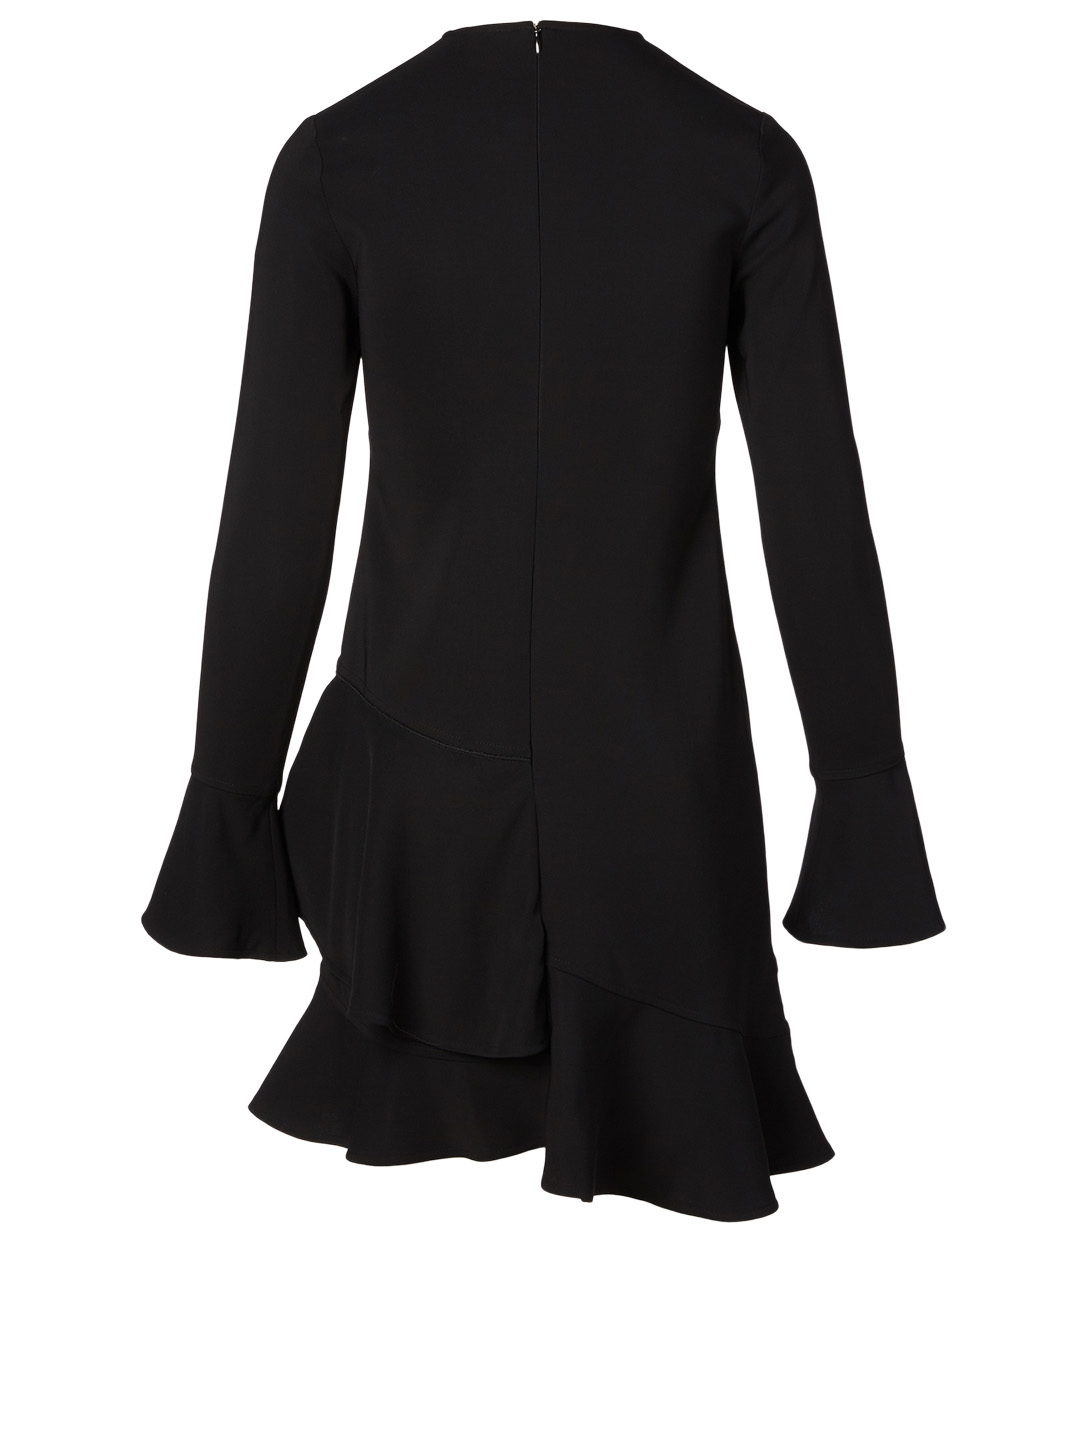 VICTORIA BECKHAM Long-Sleeve Ruffle Mini Dress Women's Black